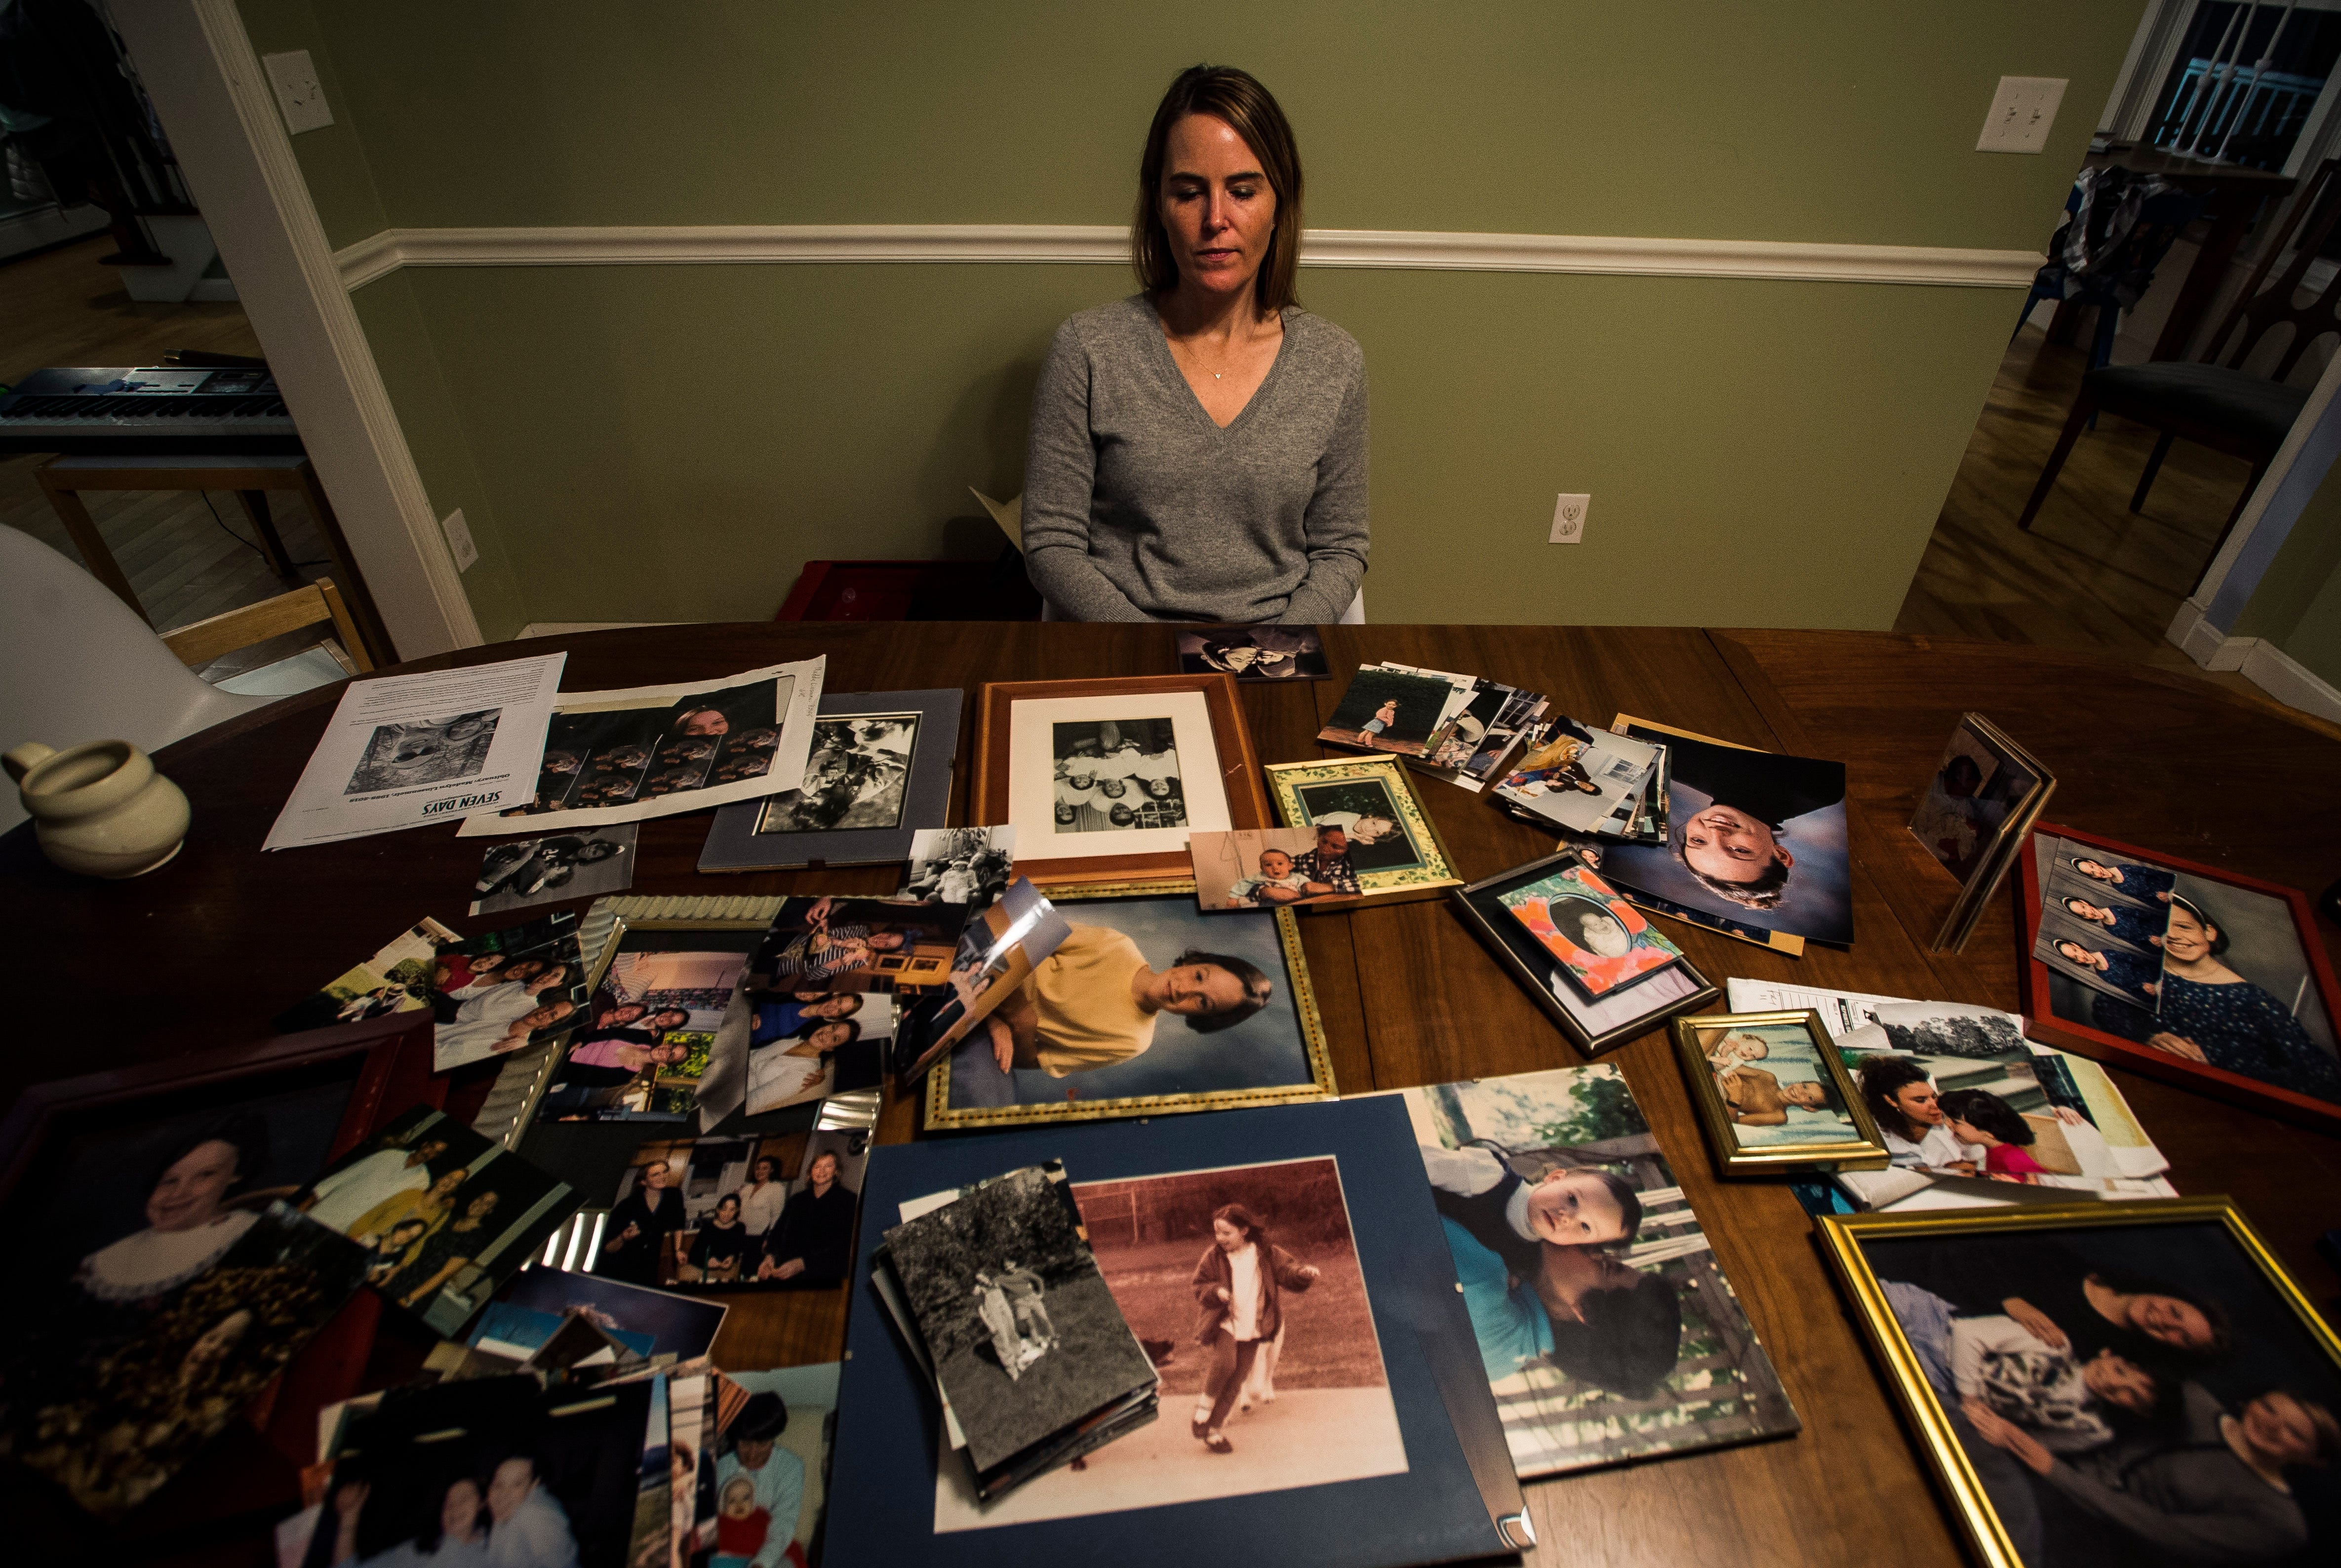 Discussion on this topic: Obituary of mother who died following opioid , obituary-of-mother-who-died-following-opioid/